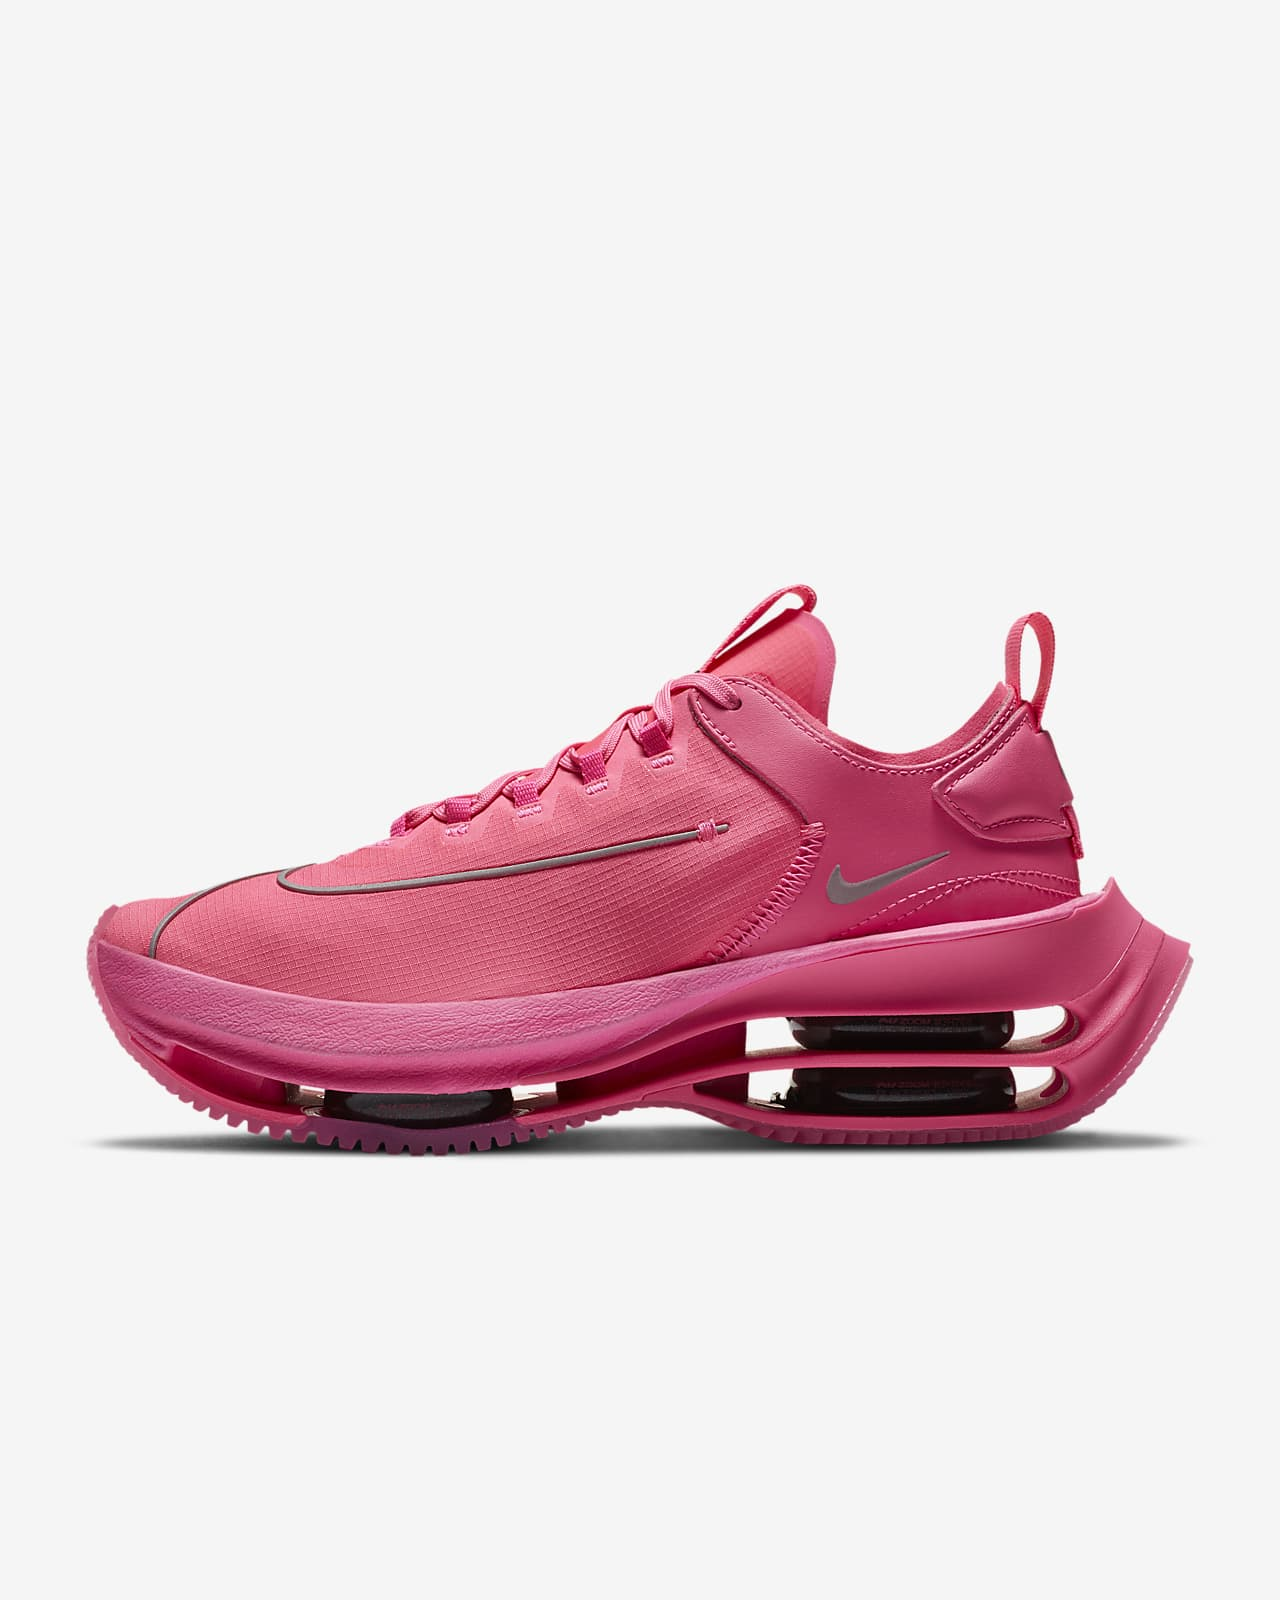 Chaussure Nike Zoom Double Stacked pour Femme. Nike LU